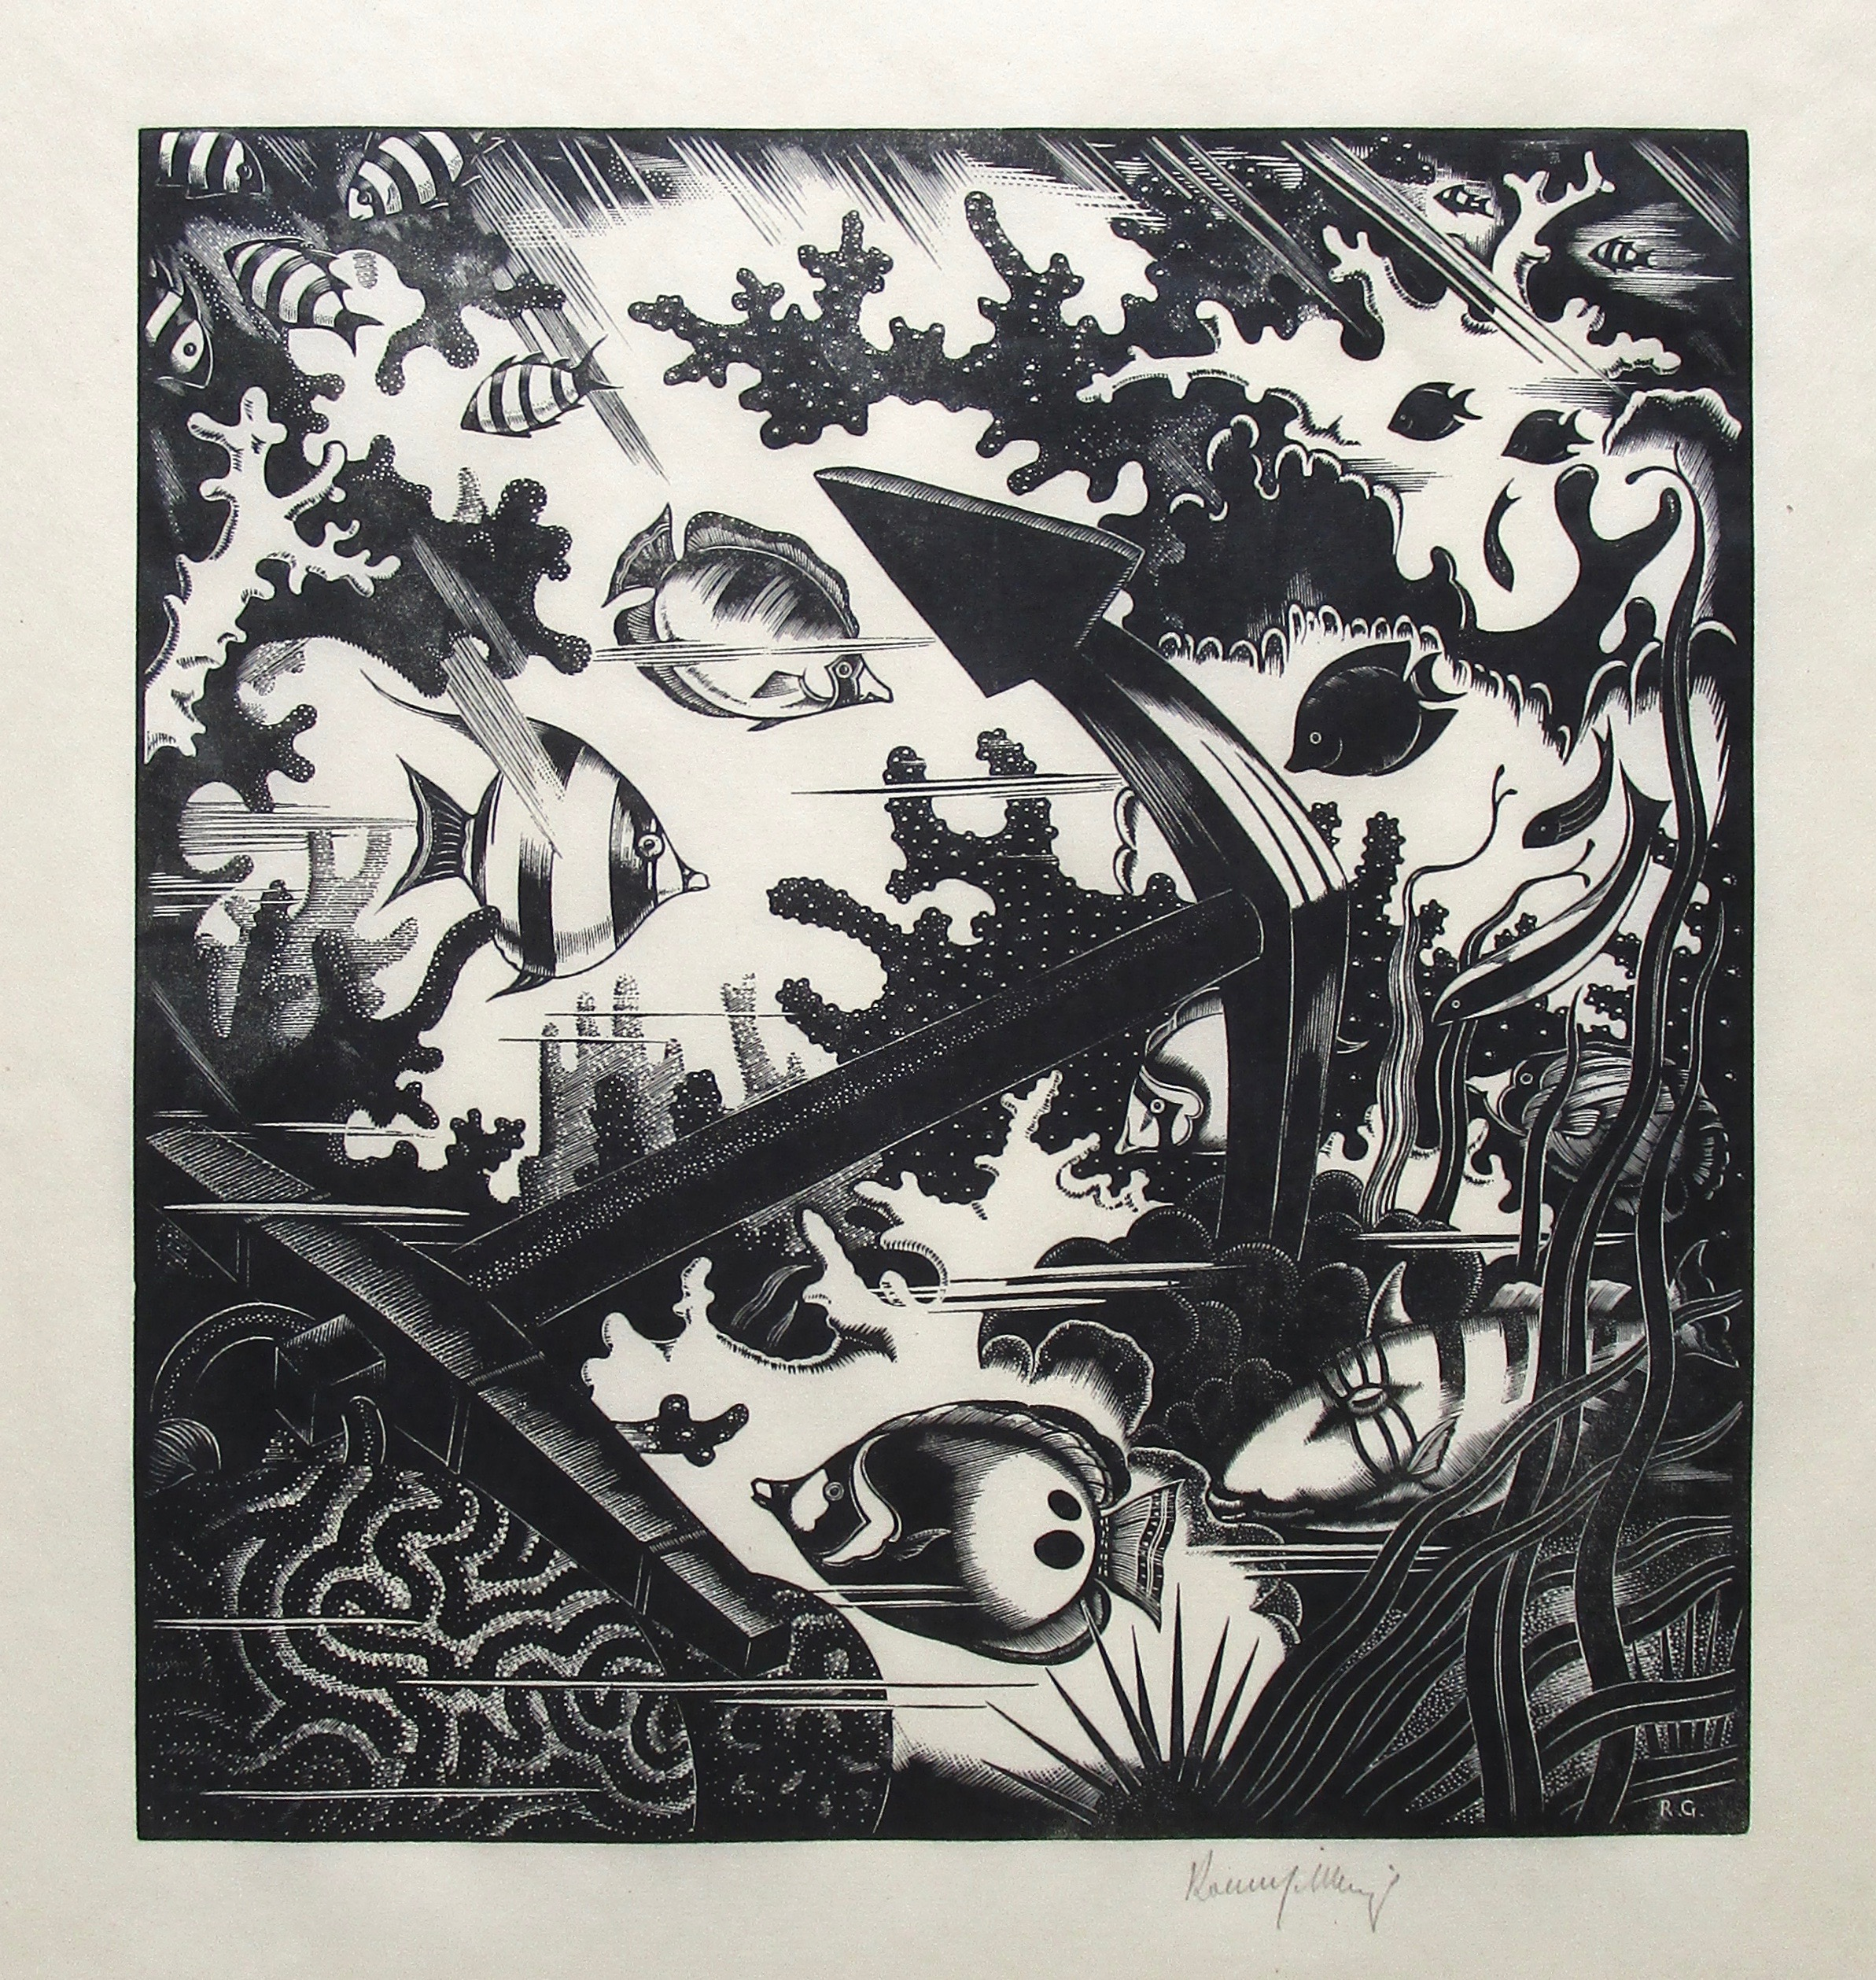 ROBERT GIBBINGS [1889-1958]. The Lost Anchor, 1936. Wood engraving on thin, cream laid paper with